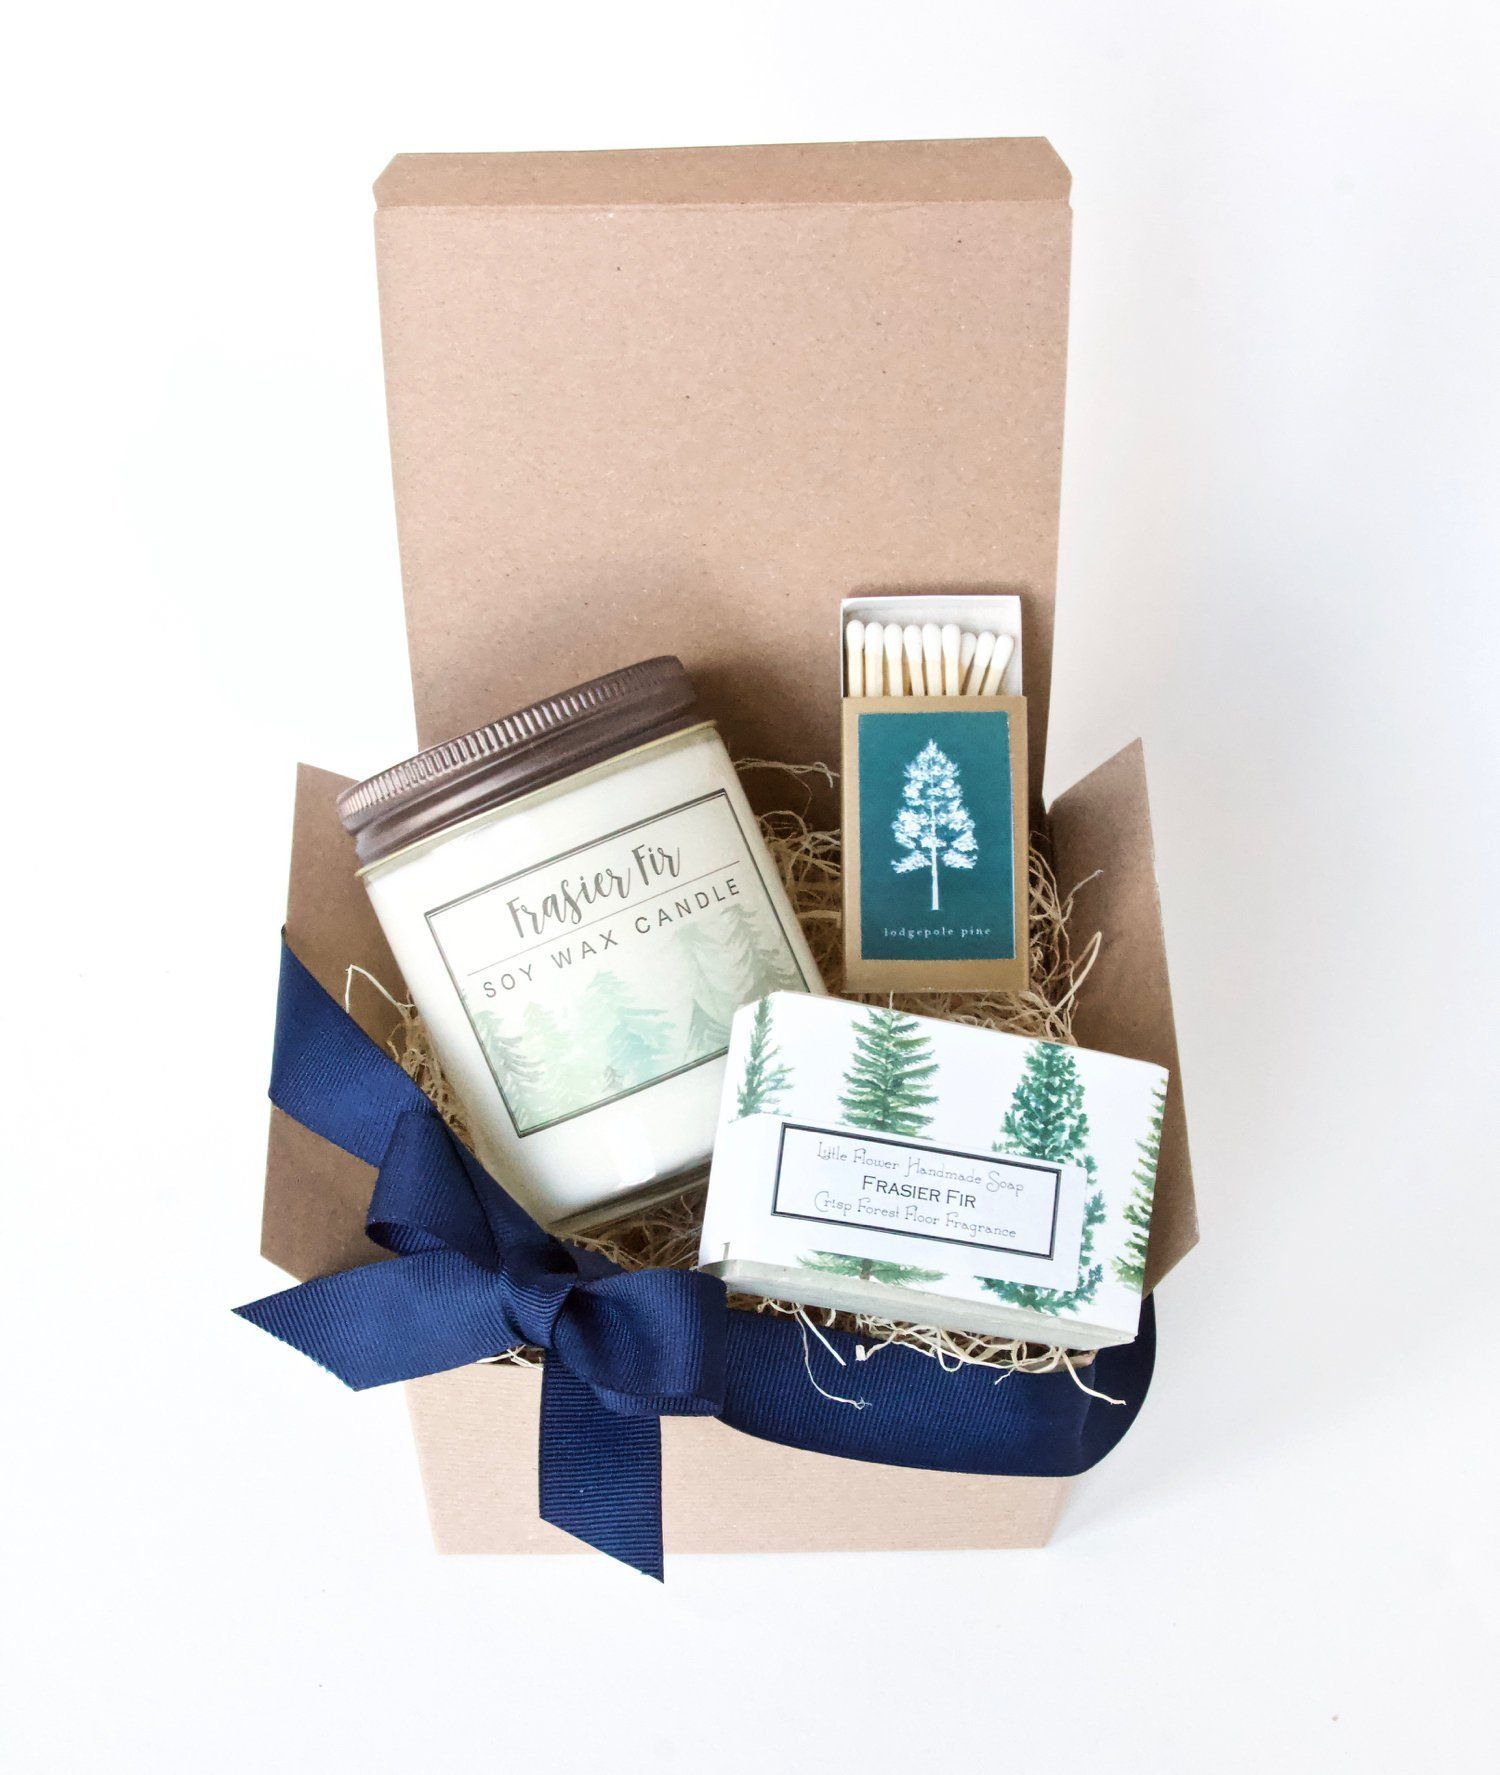 Frasier fir candle and soap gift set with images